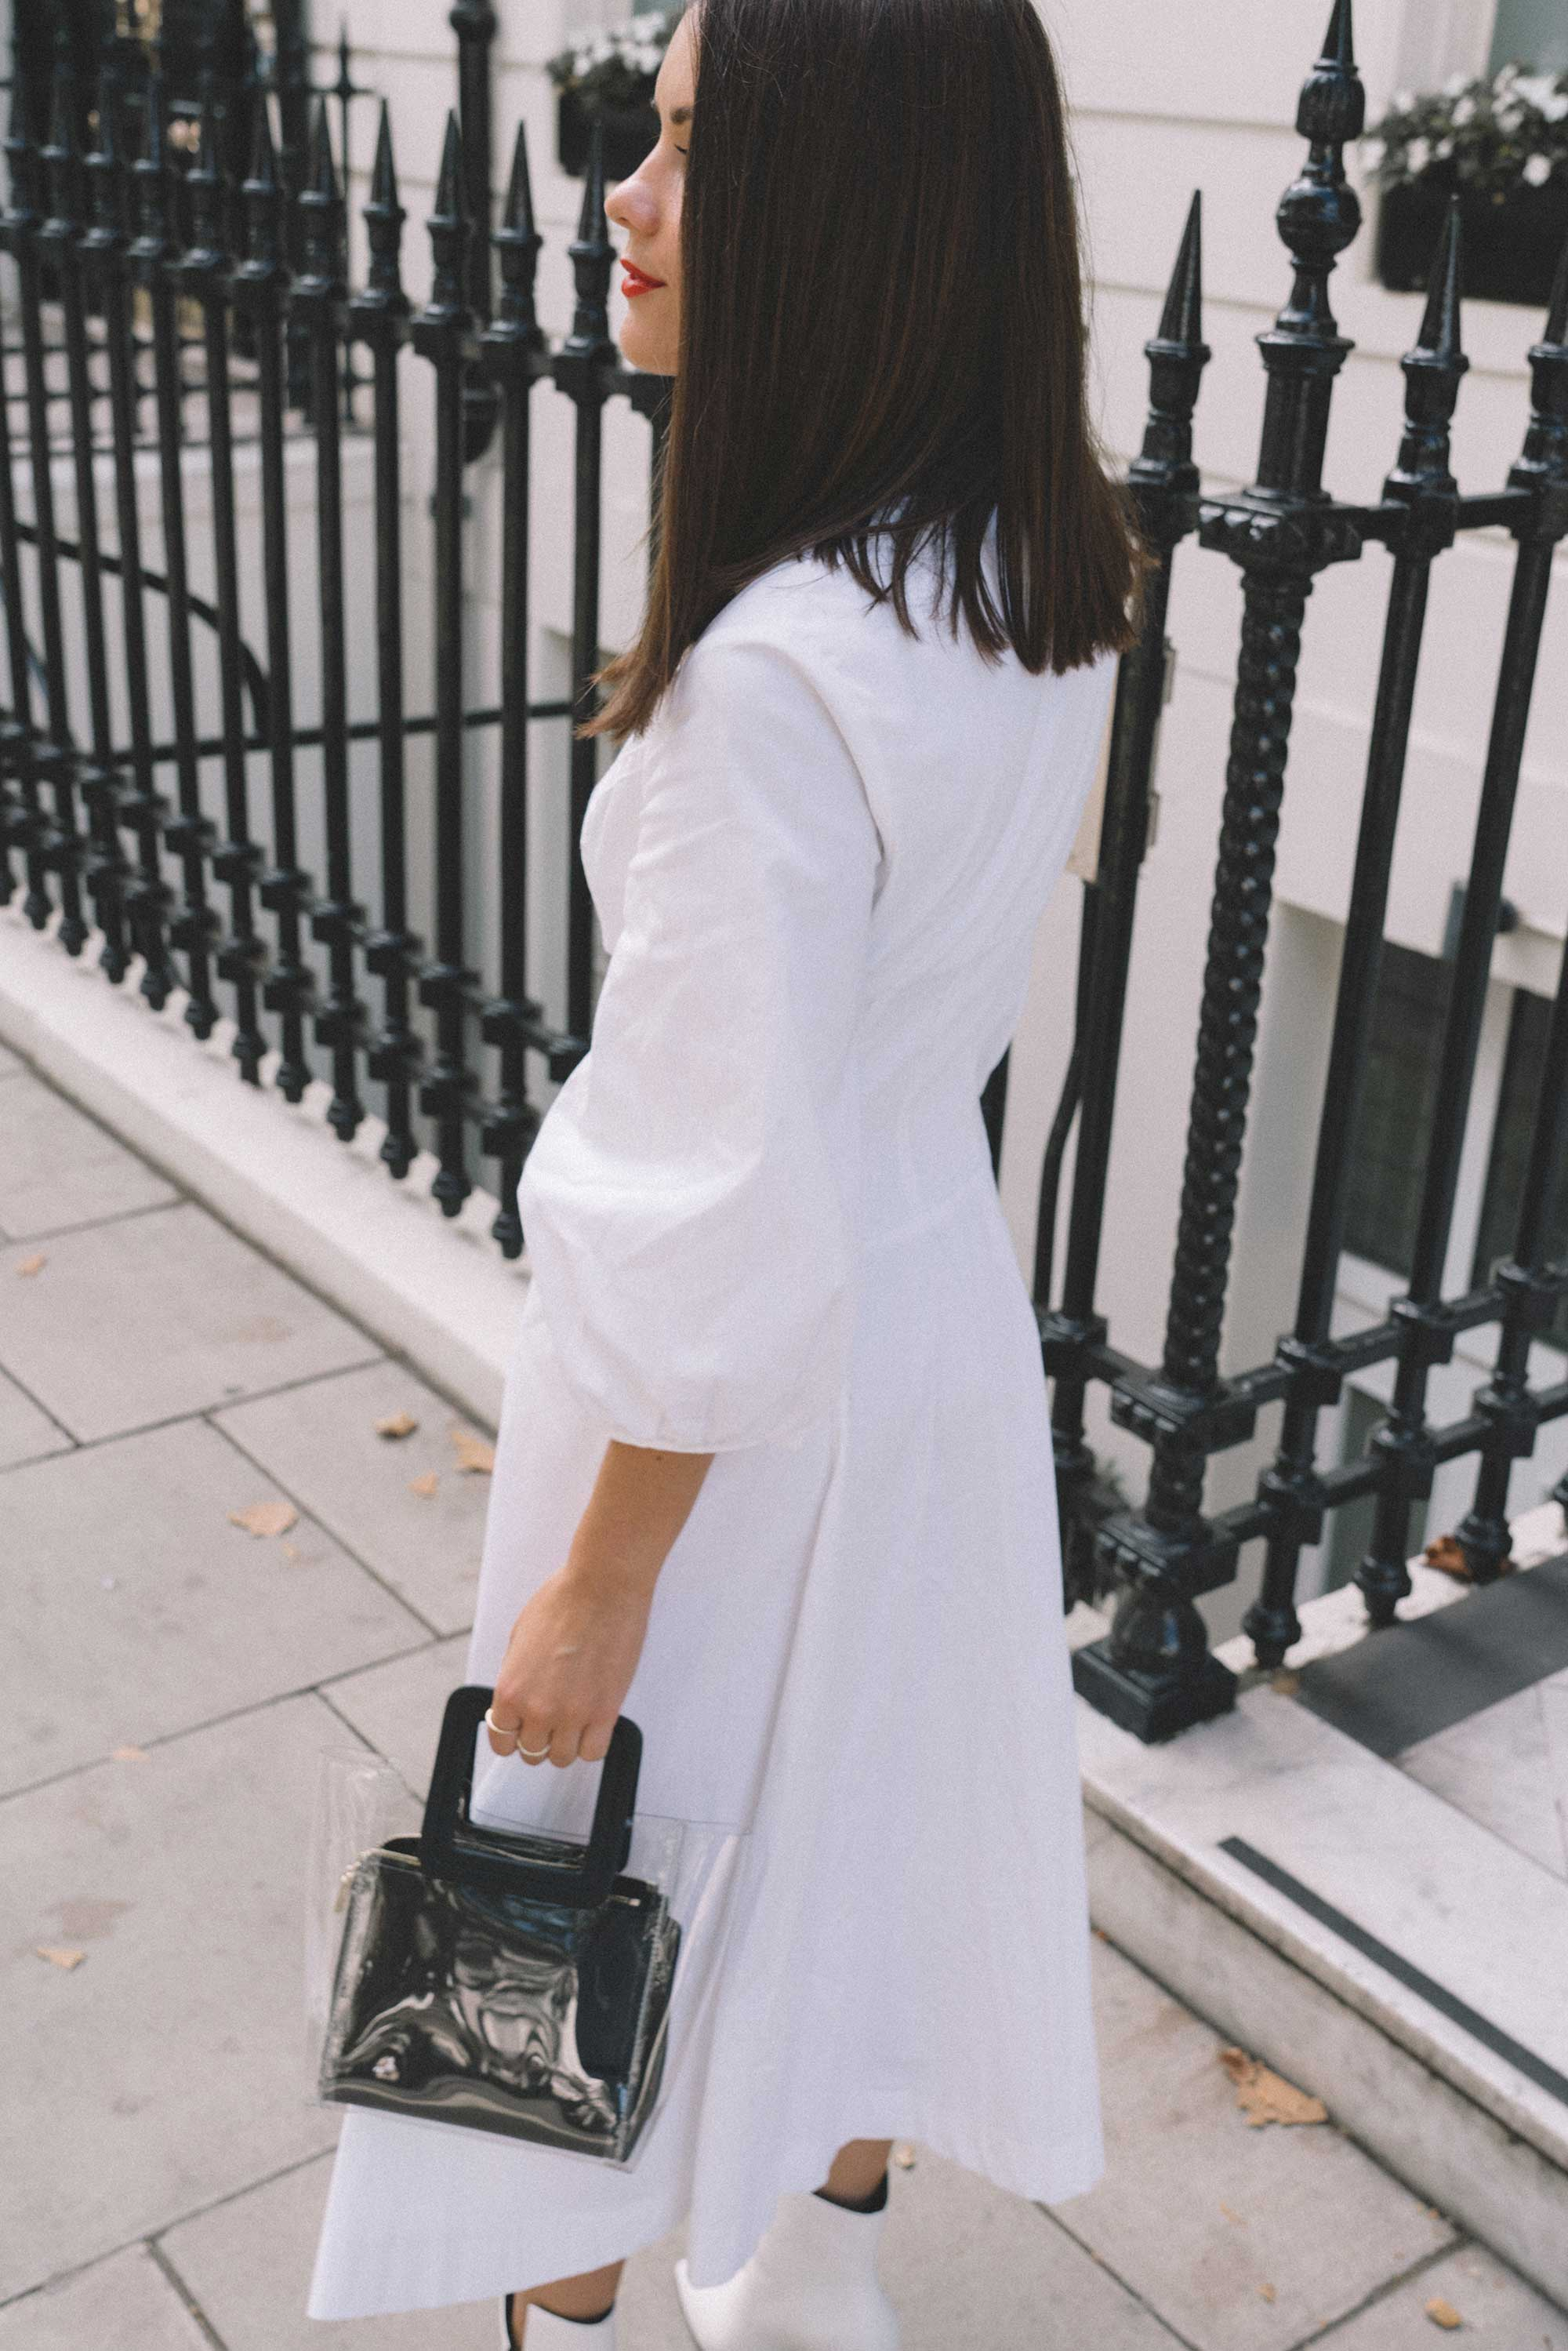 STAUD Eden Midi Dress, STAUD clear and black shirley mini PVC and leather tote, London Fashion Week Outfit5.jpg